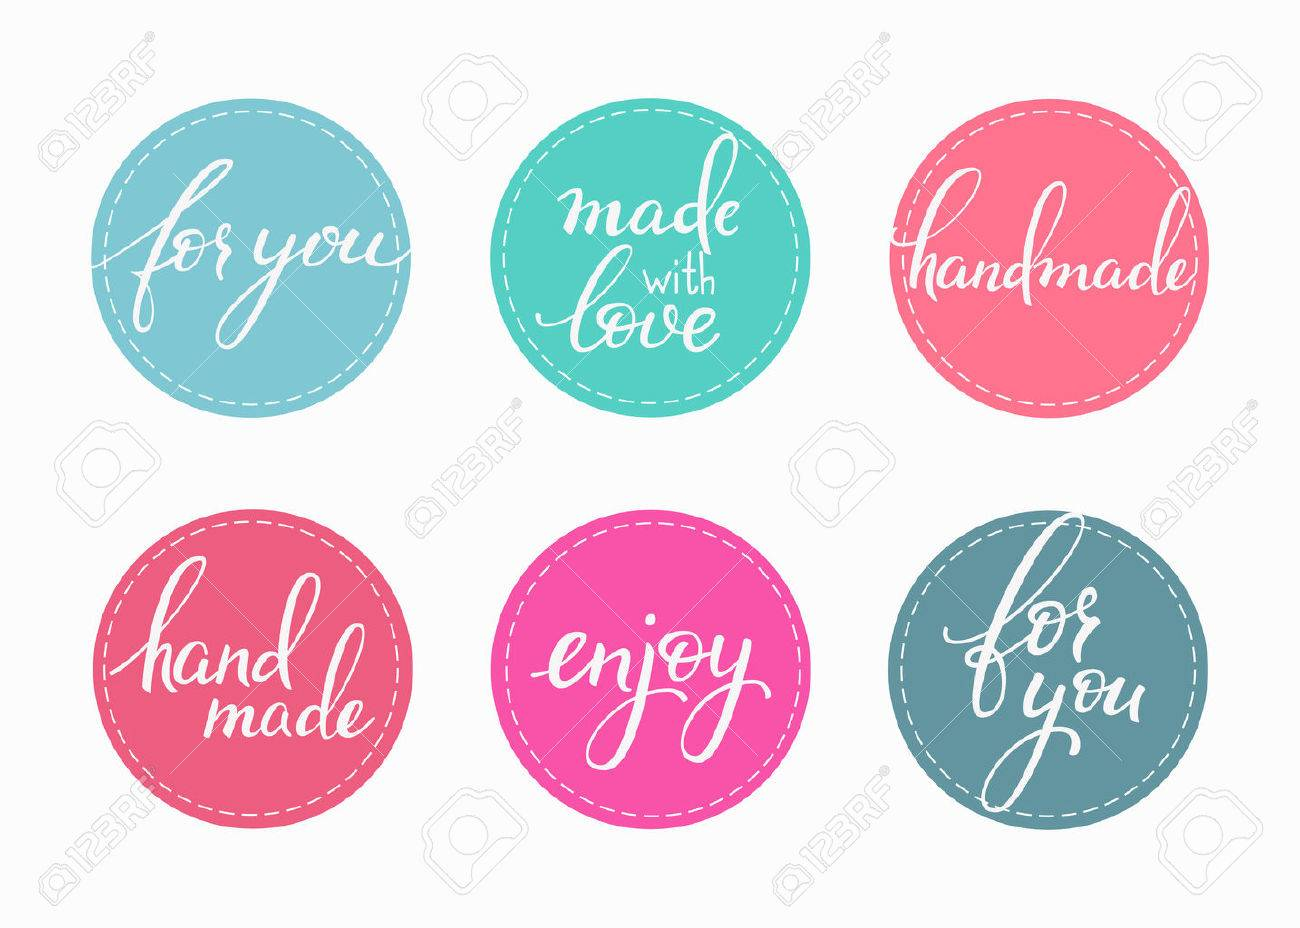 Handmade sticker lettering set. Calligraphy label graphic design lettering element. Hand written calligraphy style signs. Hand craft decoration element. Handmade. For you. Made with love. Enjoy. - 50898462